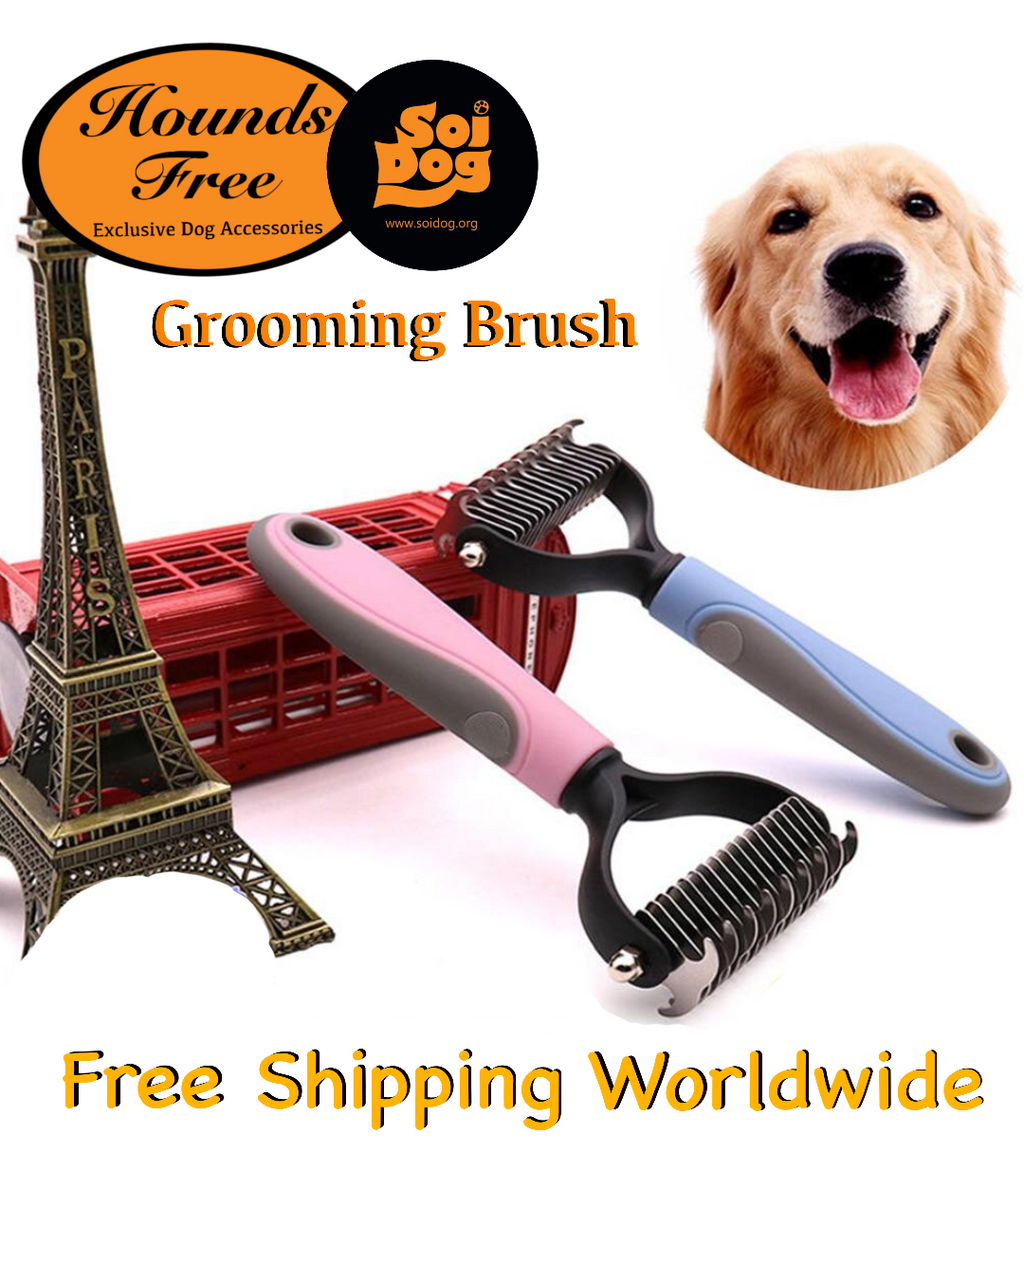 Hounds Free Grooming Brush